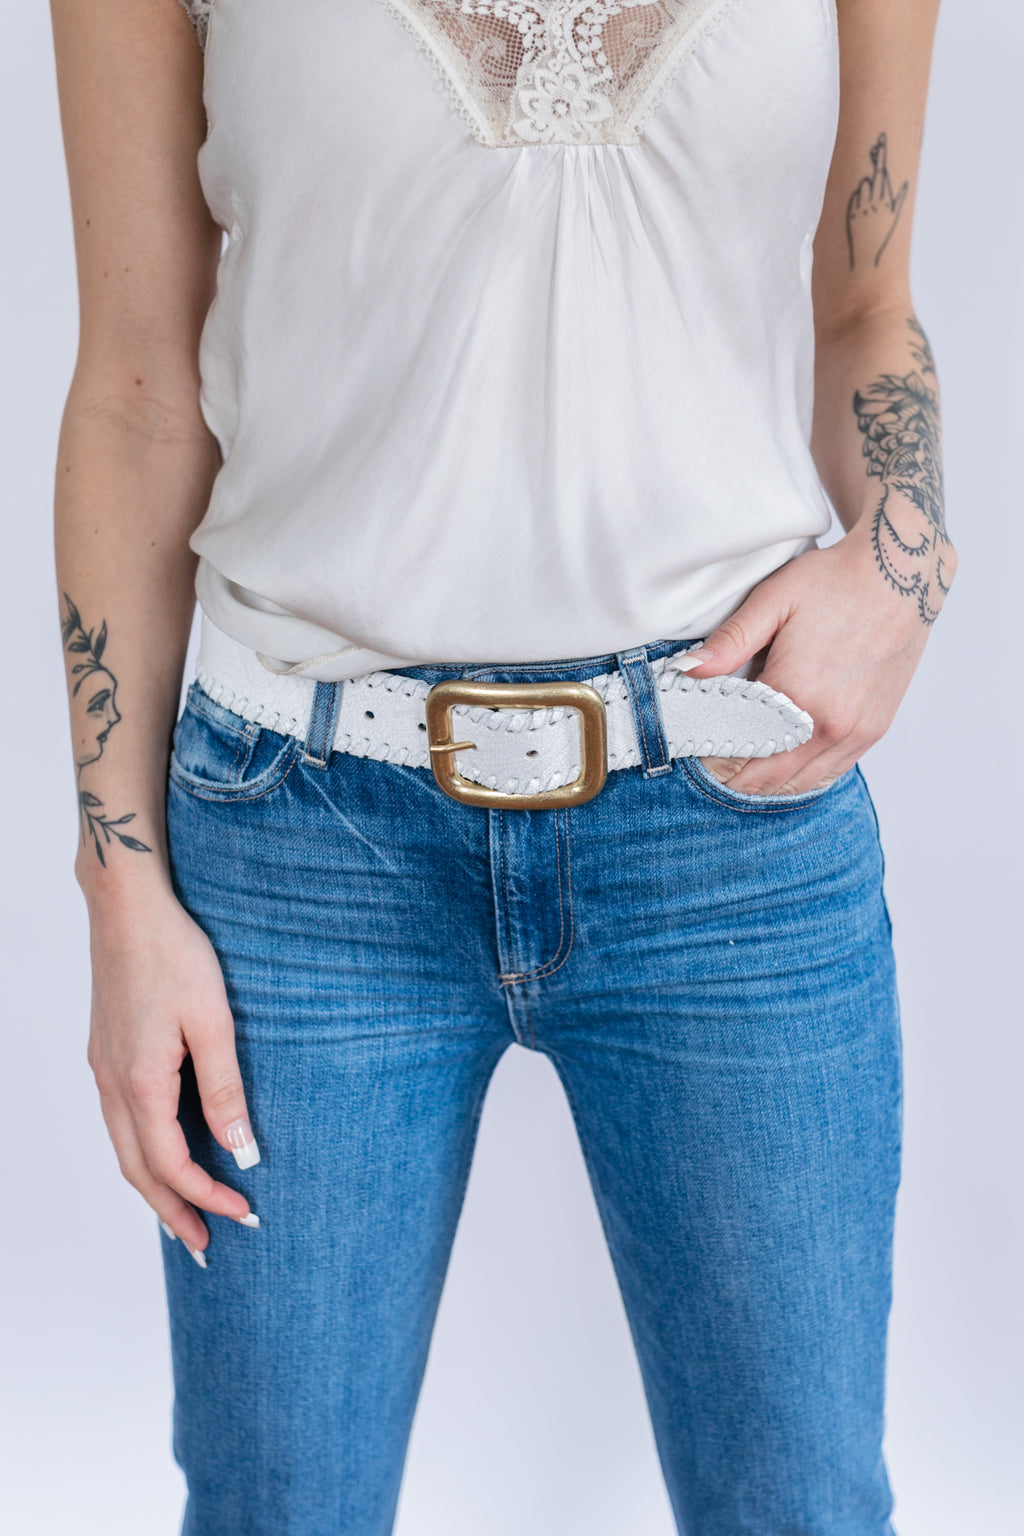 Faylee Distressed Whipstich Belt - White